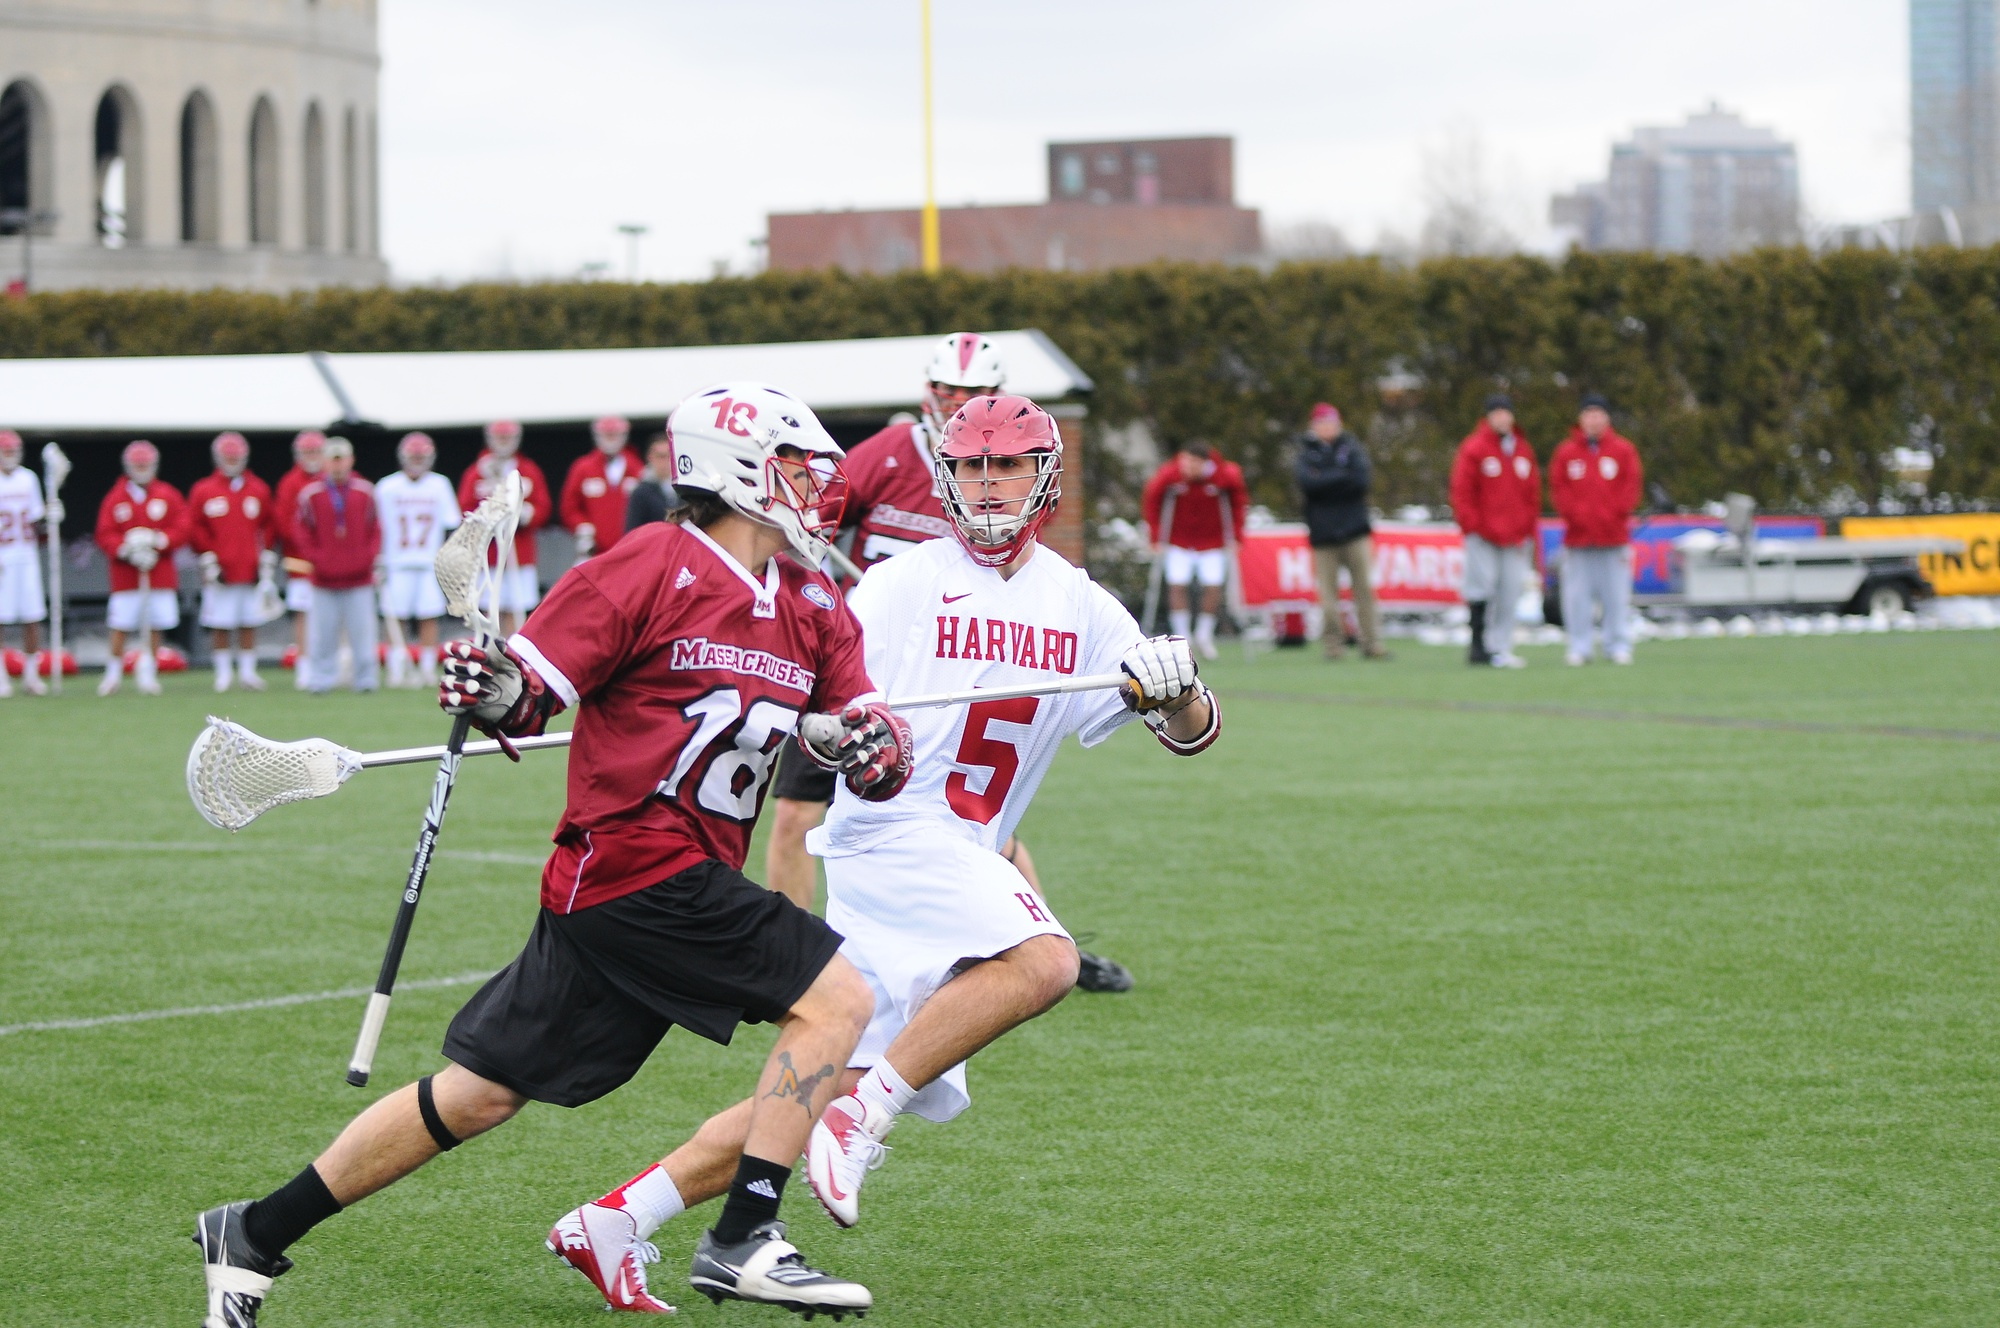 Junior Walker Kirby (5), shown here in earlier action, will contribute to a deep Crimson midfield this season as No. 13 Harvard tries to replace key graduated players at the position. Last season, the Crimson won its first Ivy League Championship in 24 years, sharing the regular season crown with Cornell.